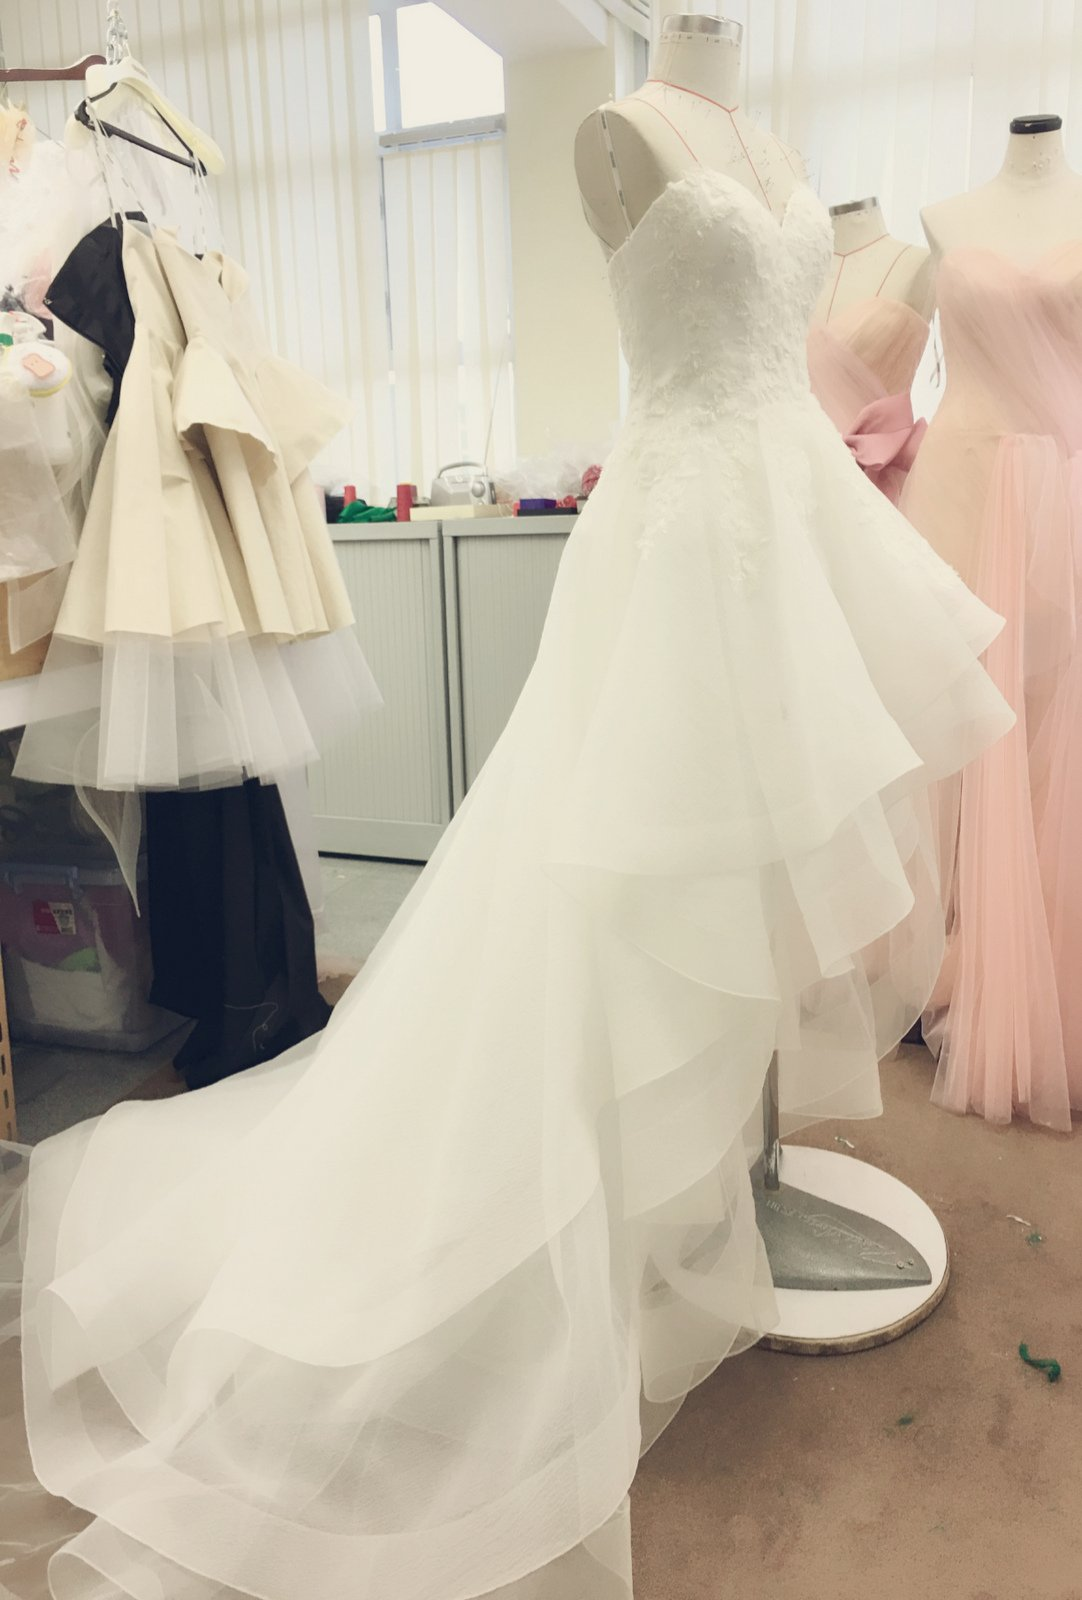 林心如婚照part 1 - Cocoonbridal - gown work in progress